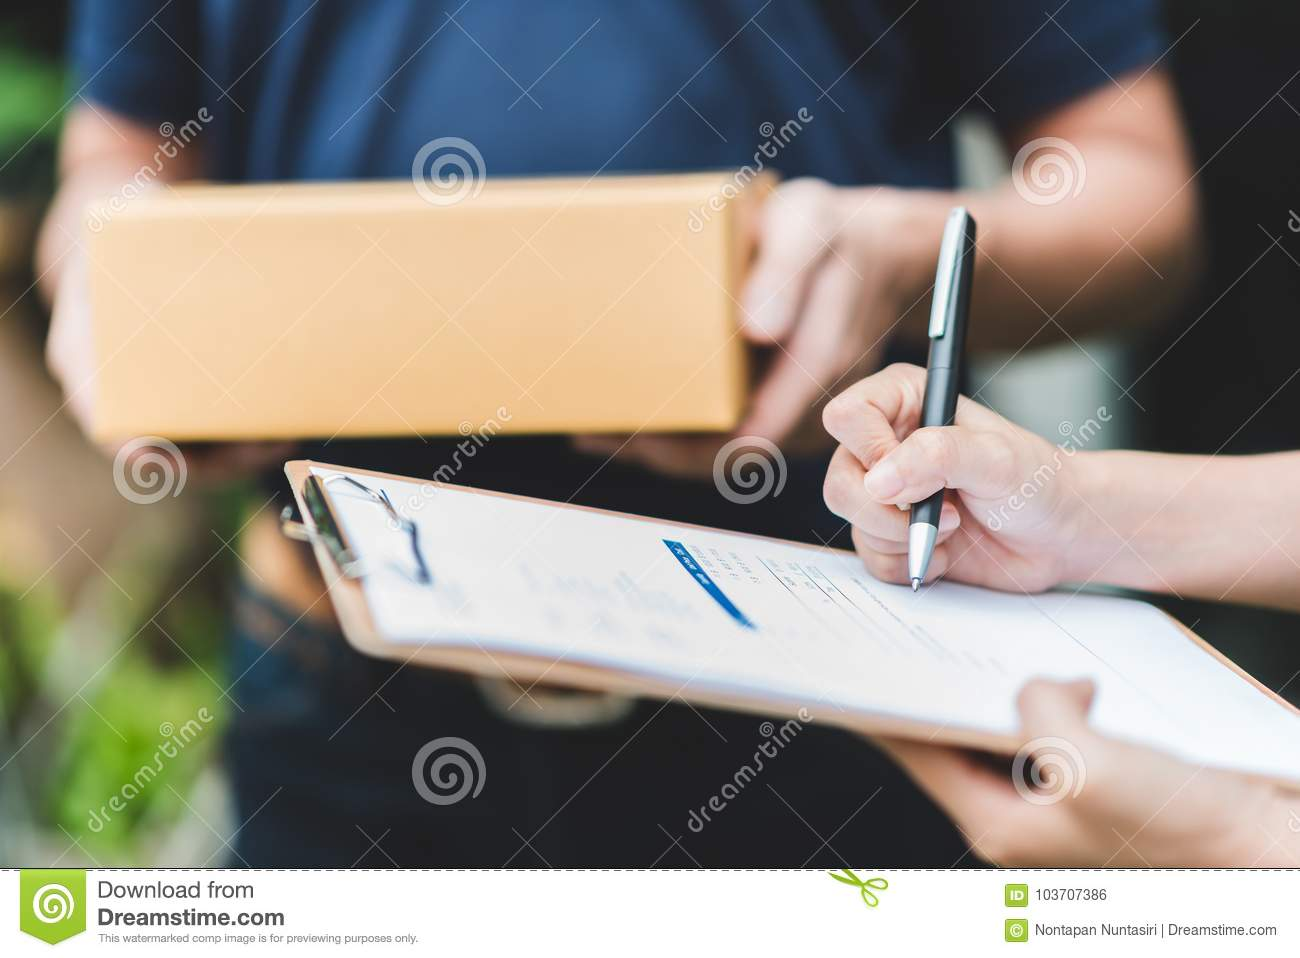 hand-putting-signature-clipboard-to-rece